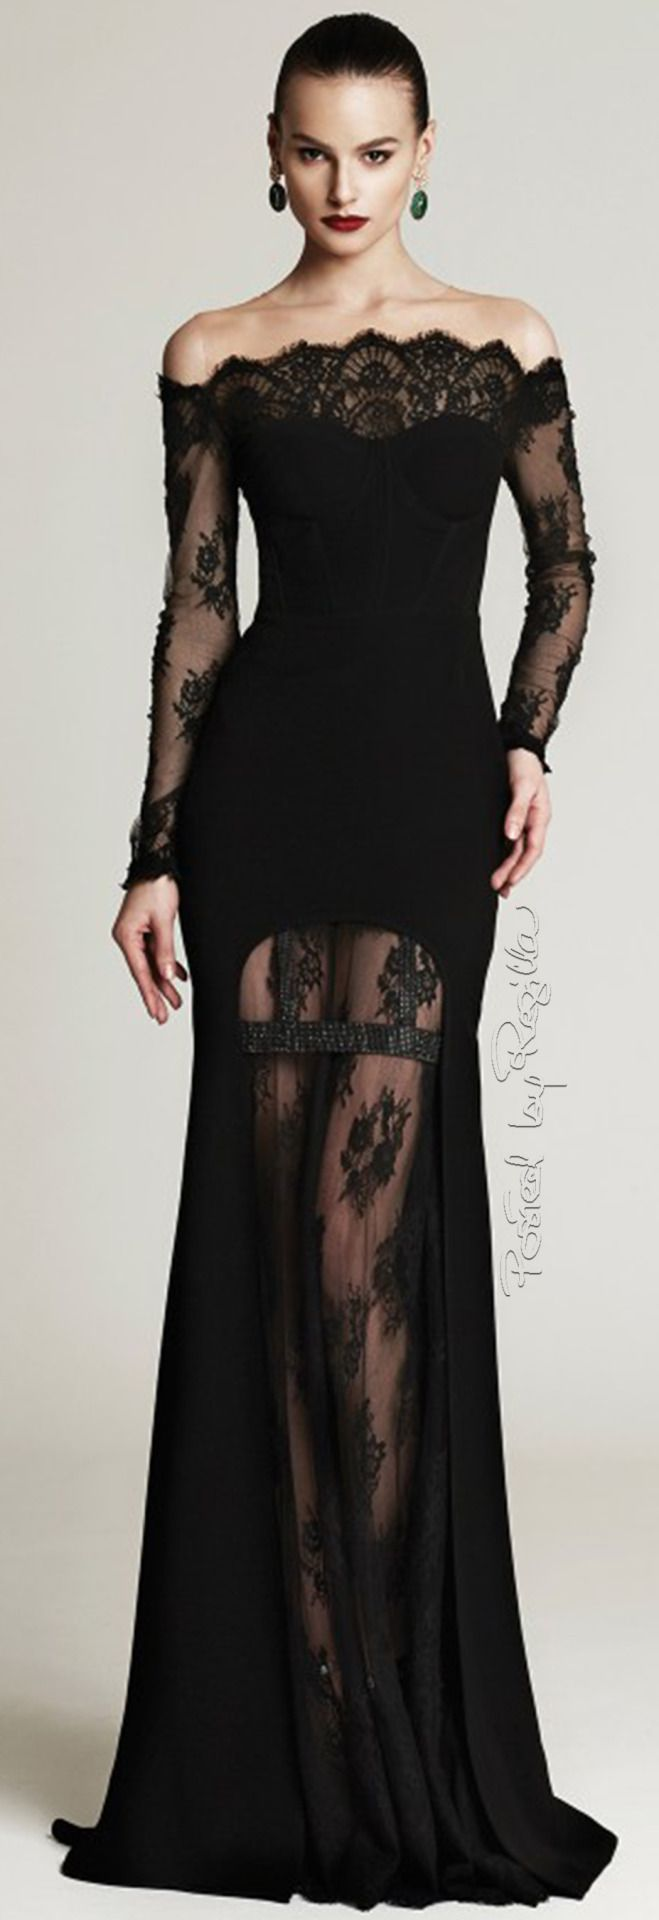 Long black lace dress pinterest yellow